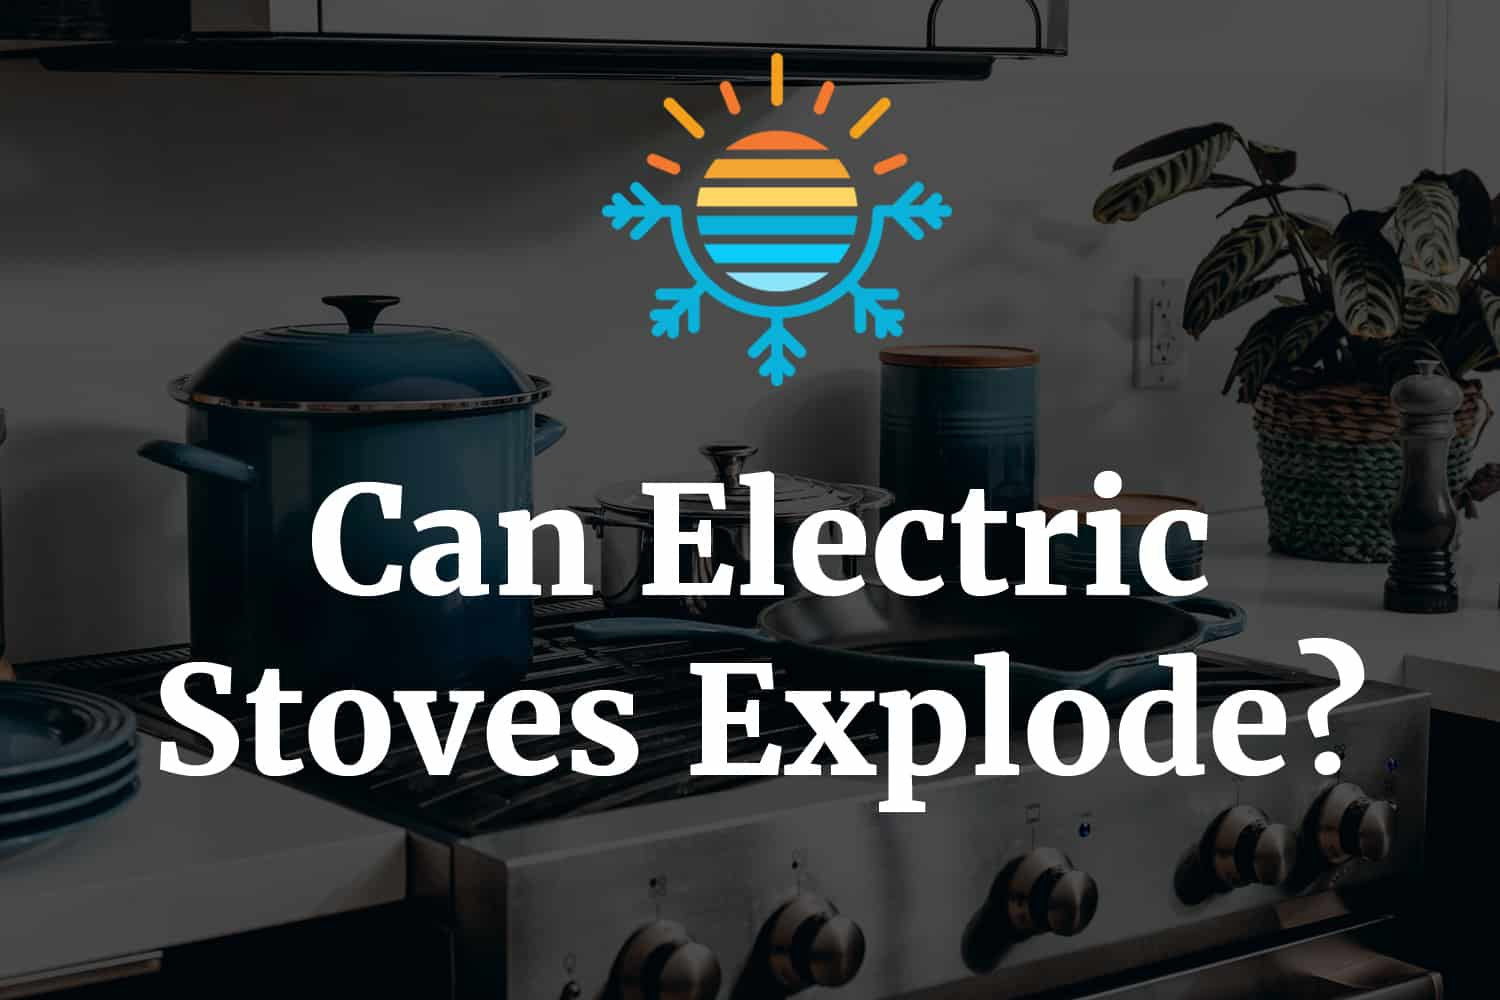 Can electric stoves explode?